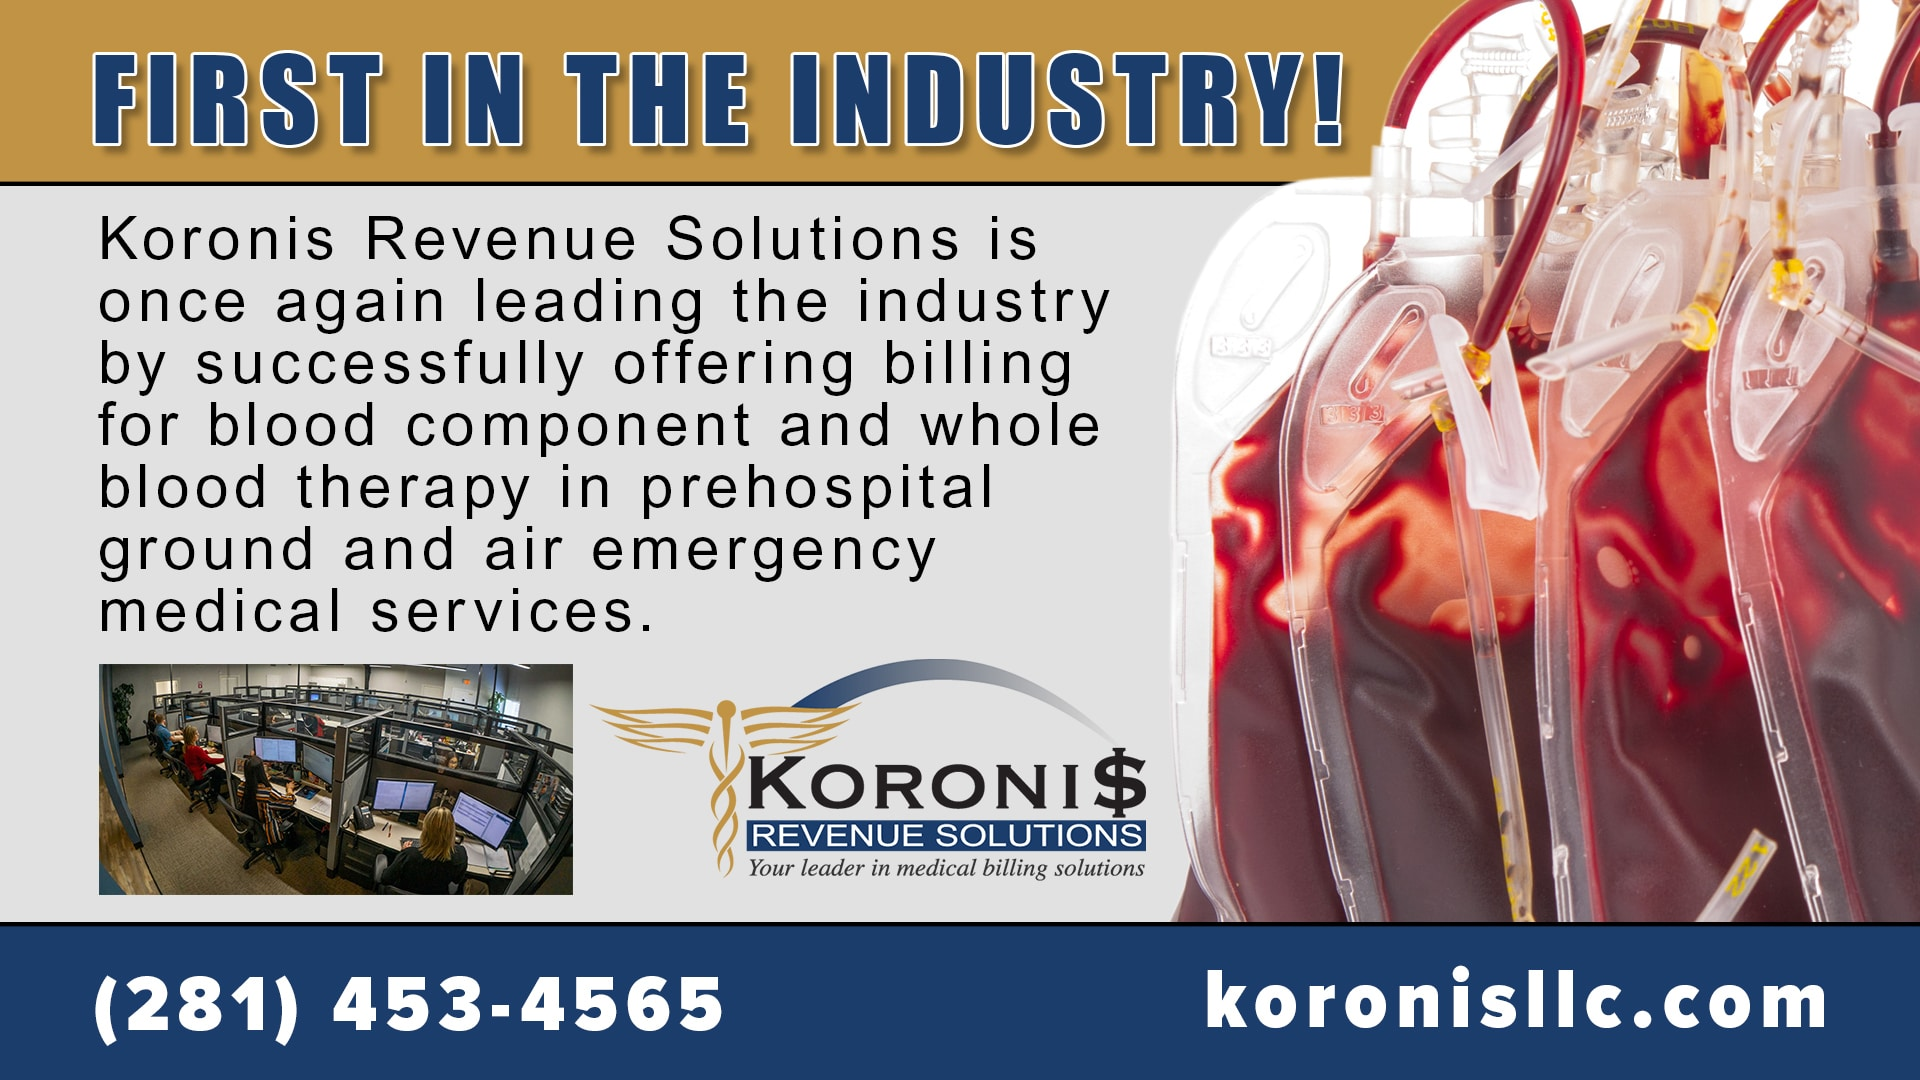 Koronis Revenue Solutions - first in industry